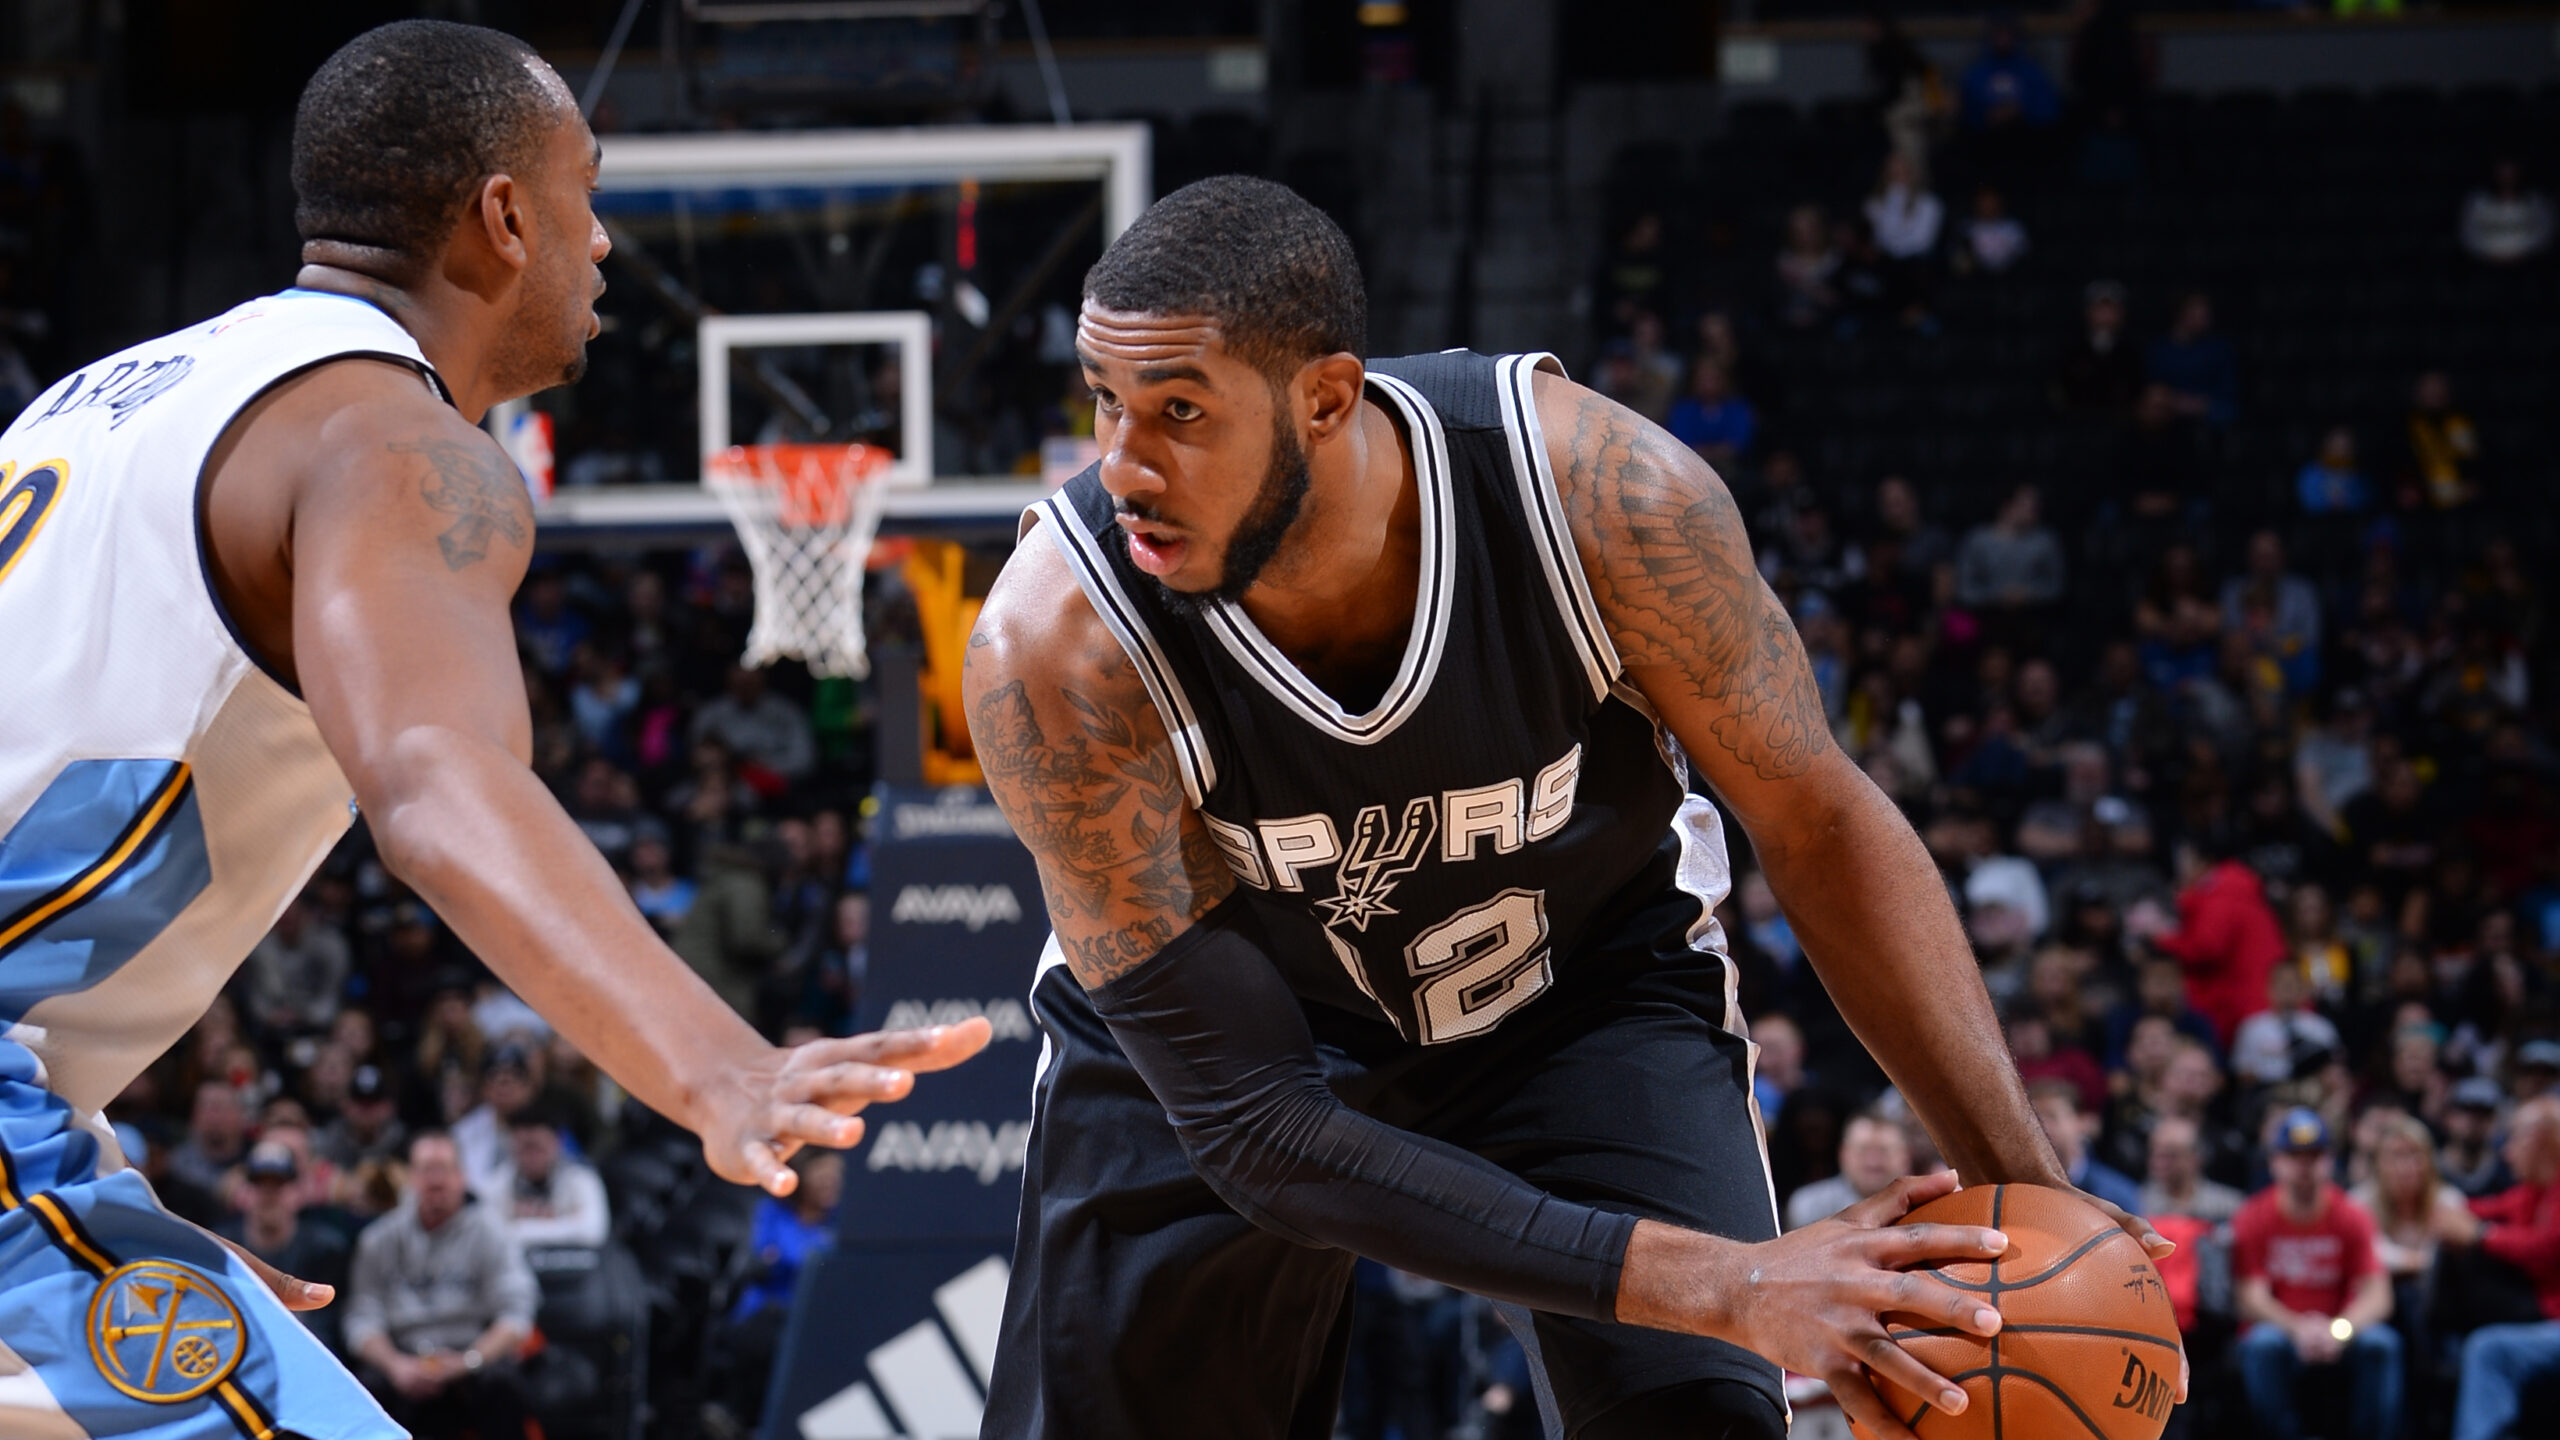 Brooklyn Nets sign forward LaMarcus Aldridge